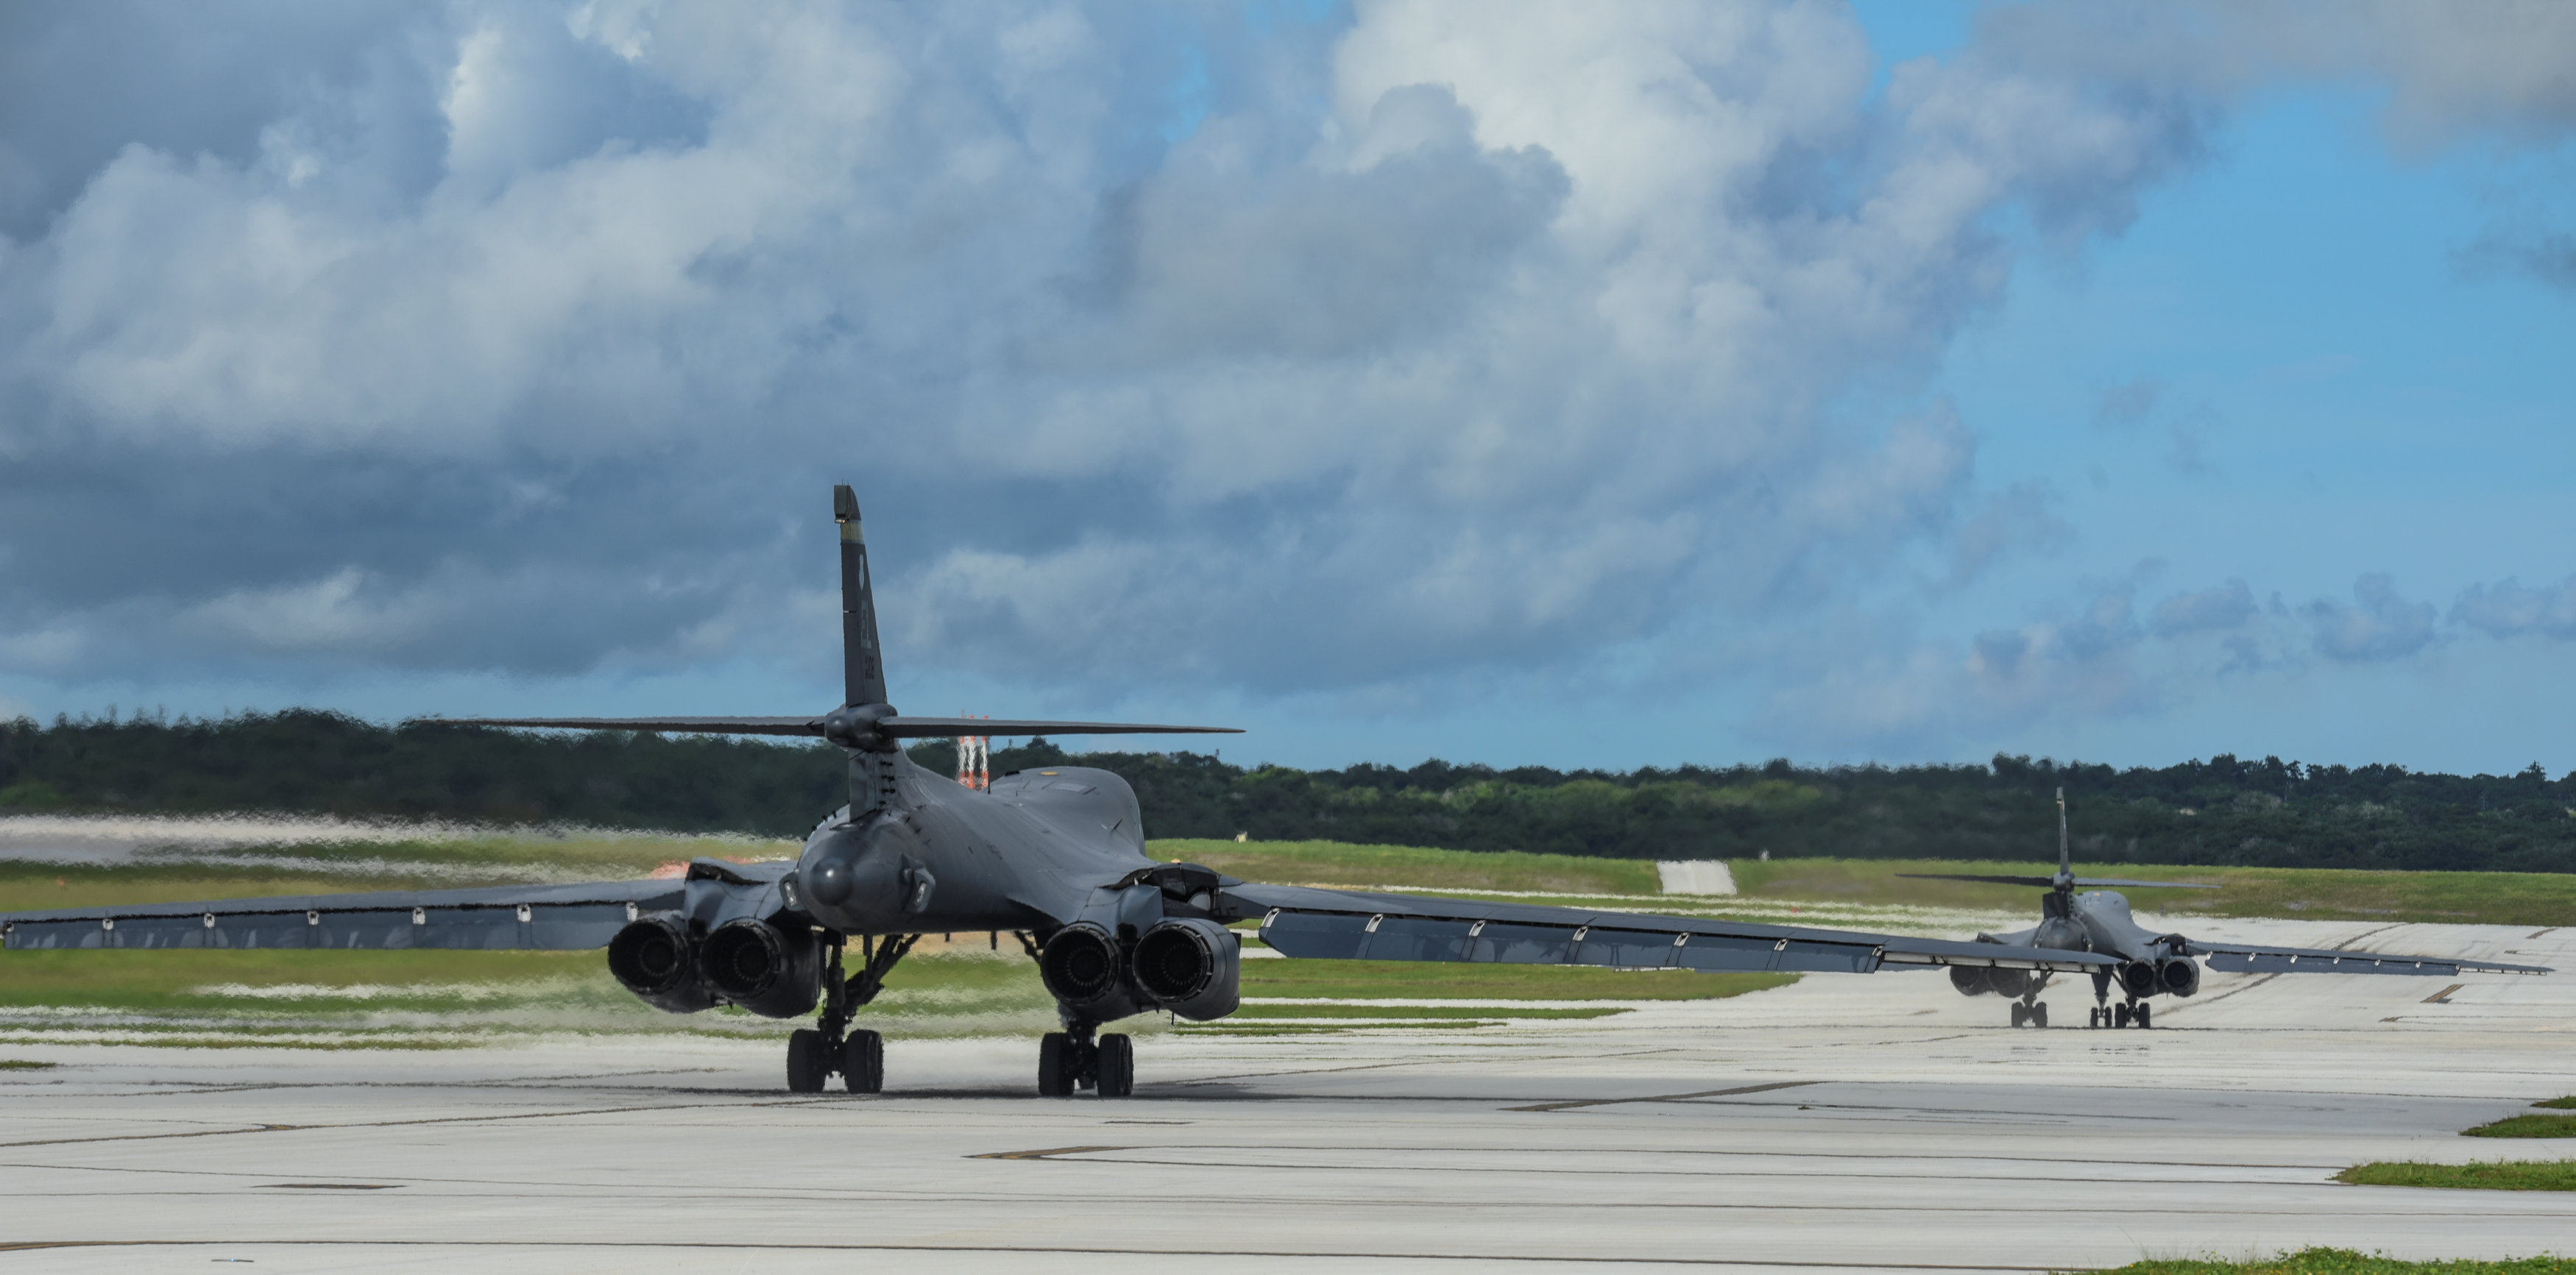 Two U.S. Air Force B-1B Lancer bombers prepare to take off for a 10-hour mission, flying in the vicinity of Kyushu, Japan, the East China Sea, and the Korean peninsula, from Andersen Air Force Base, Guam August 8, 2017. (U.S. Air Force/Tech. Sgt. Richard P. Ebensberger/Handout via REUTERS)